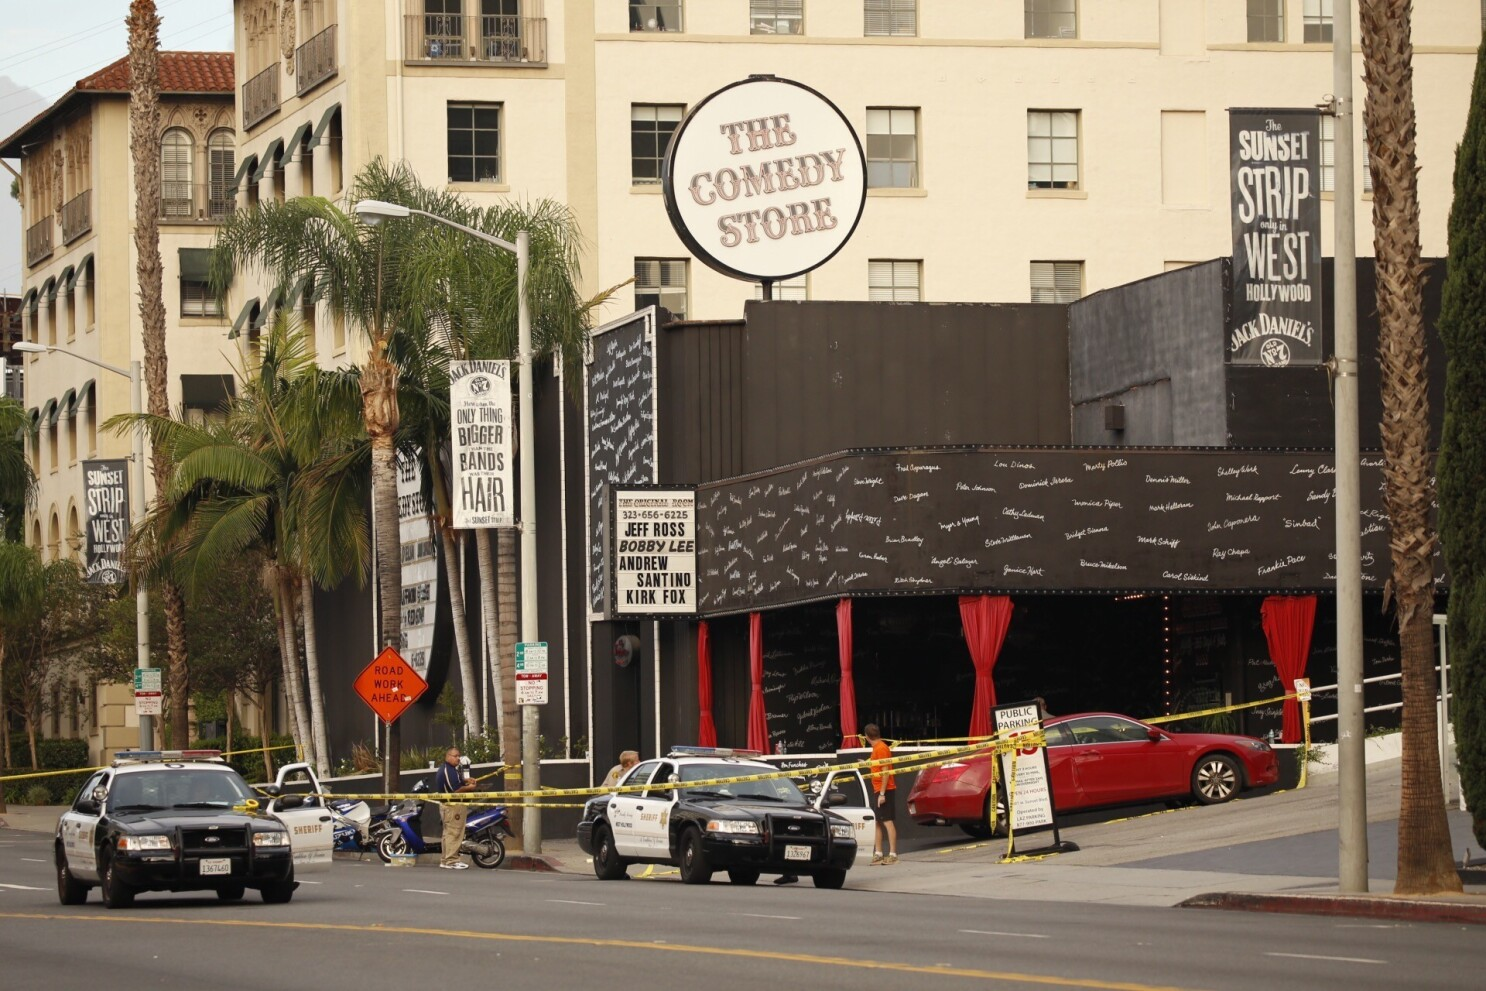 The Comedy Store closes for a night after shooting leaves one dead